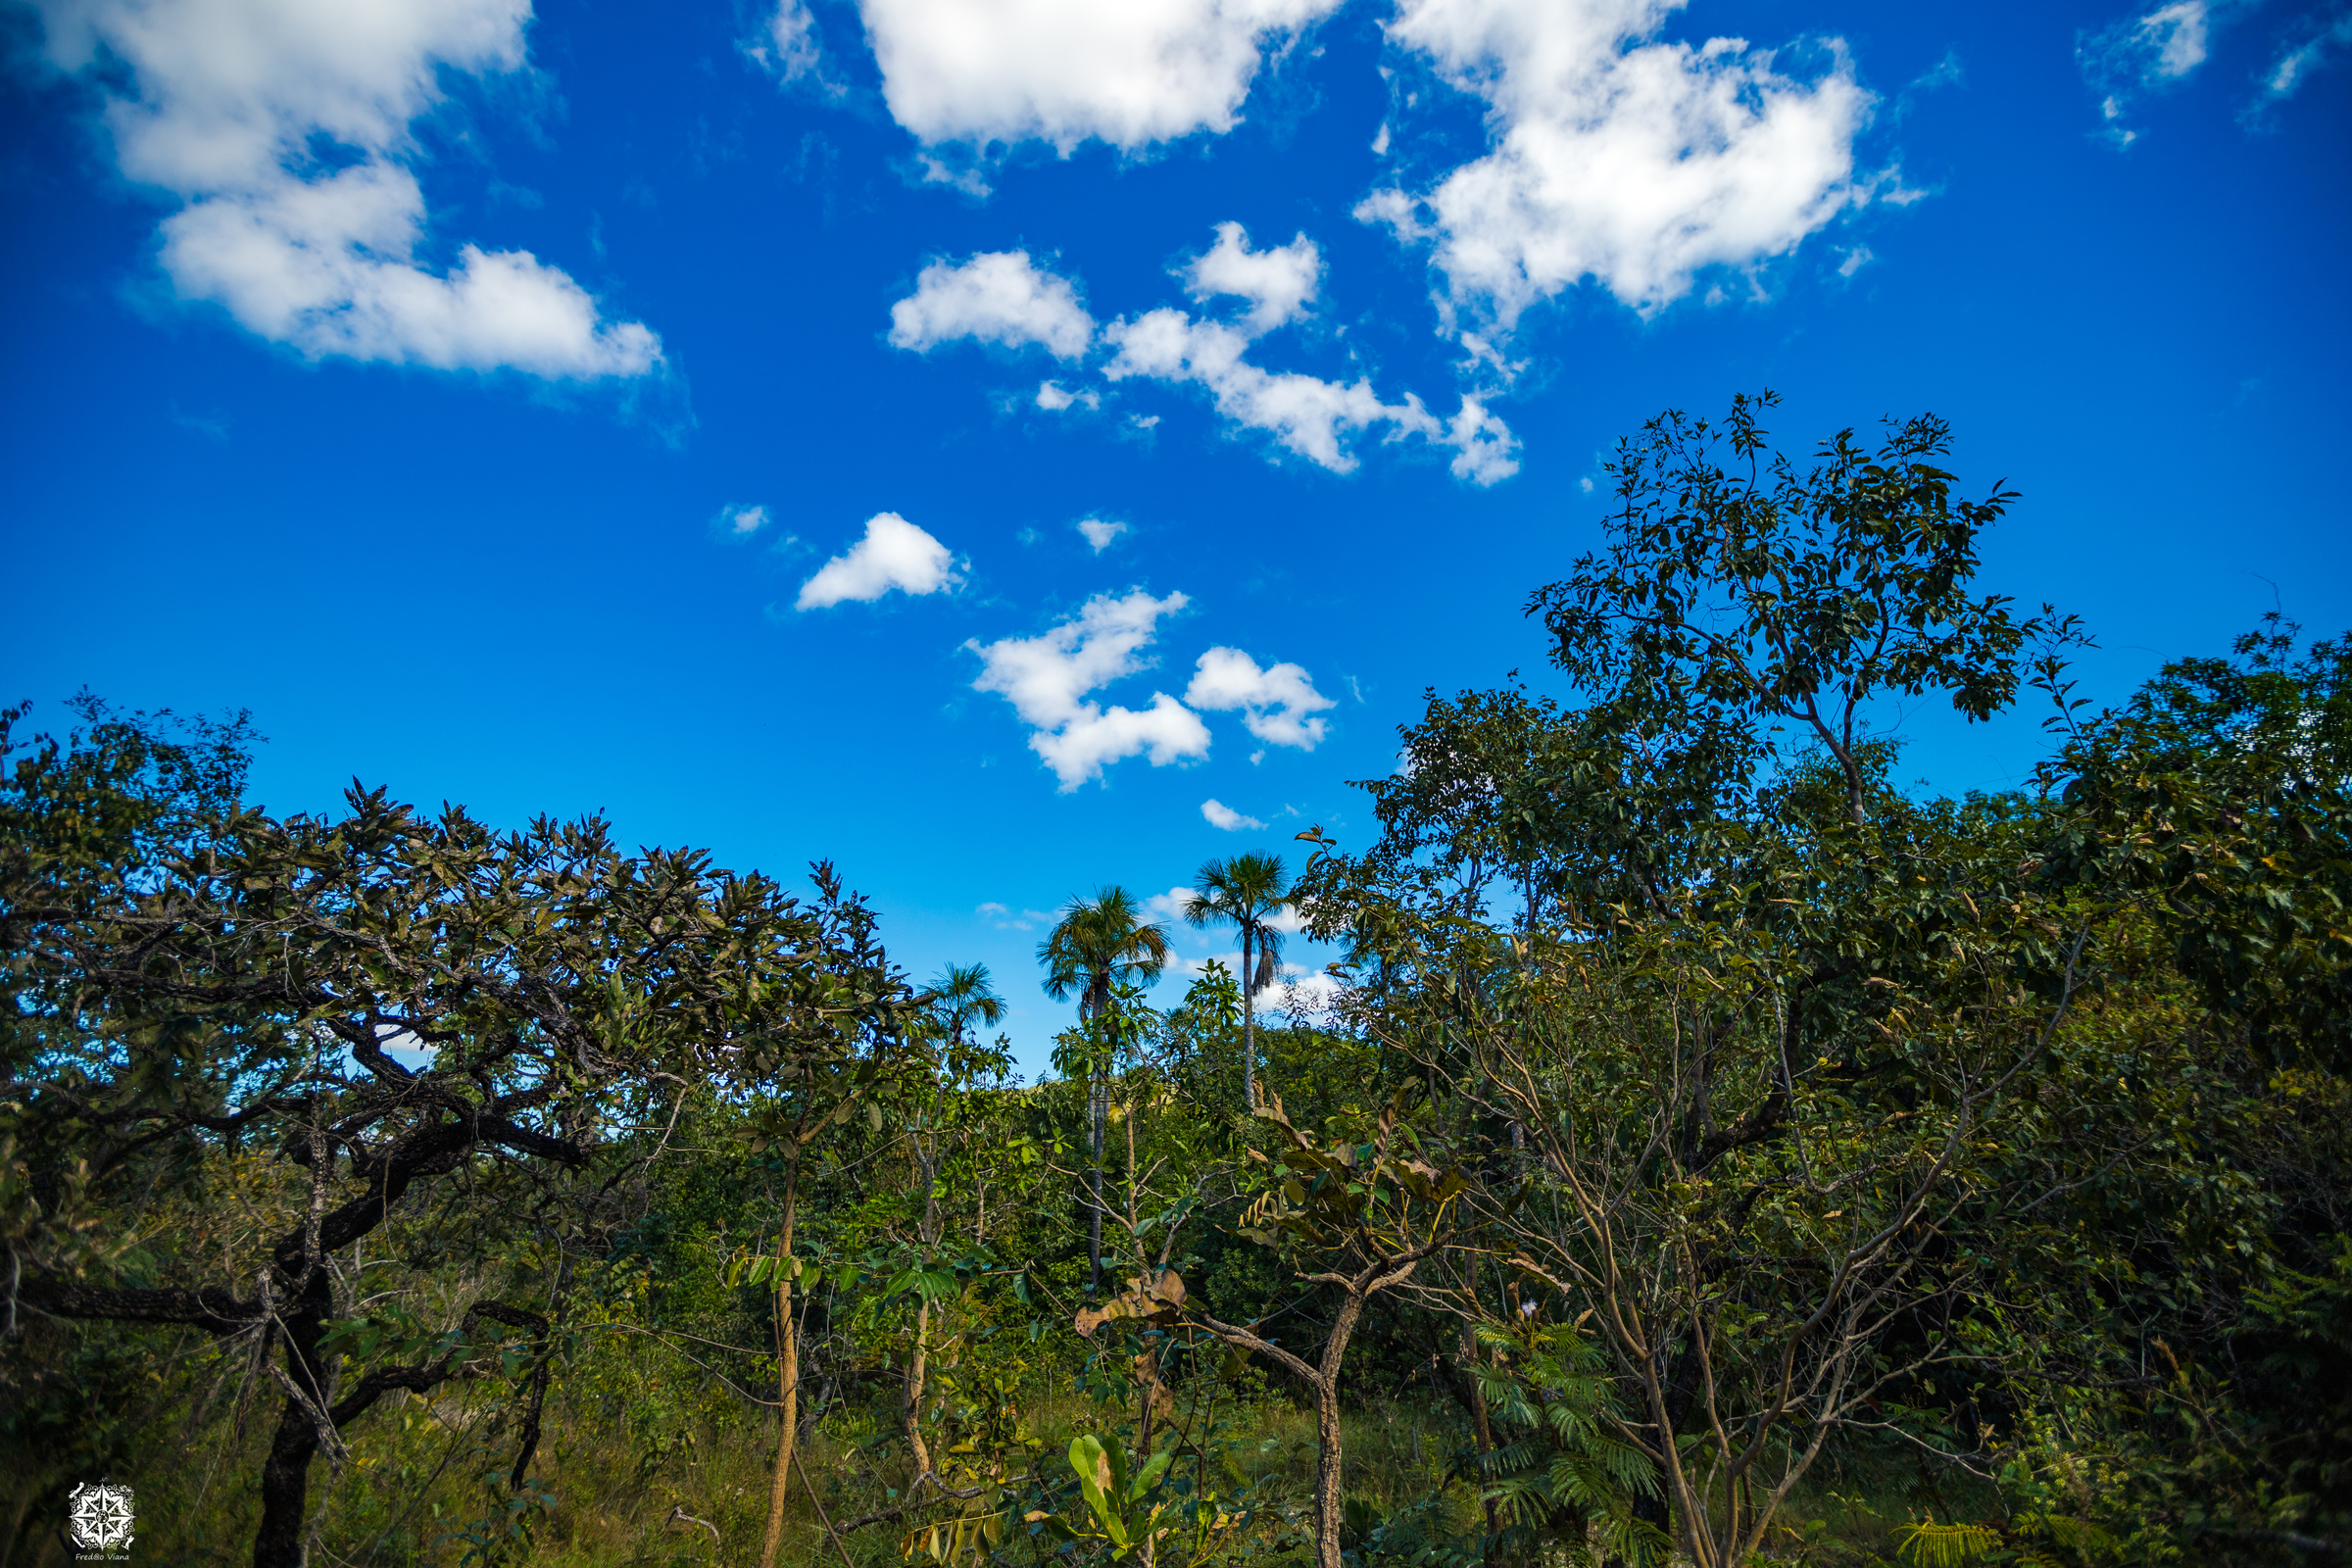 Typical Cerrado biome trees seen in Pirenópolis, Goiás, Brazil.